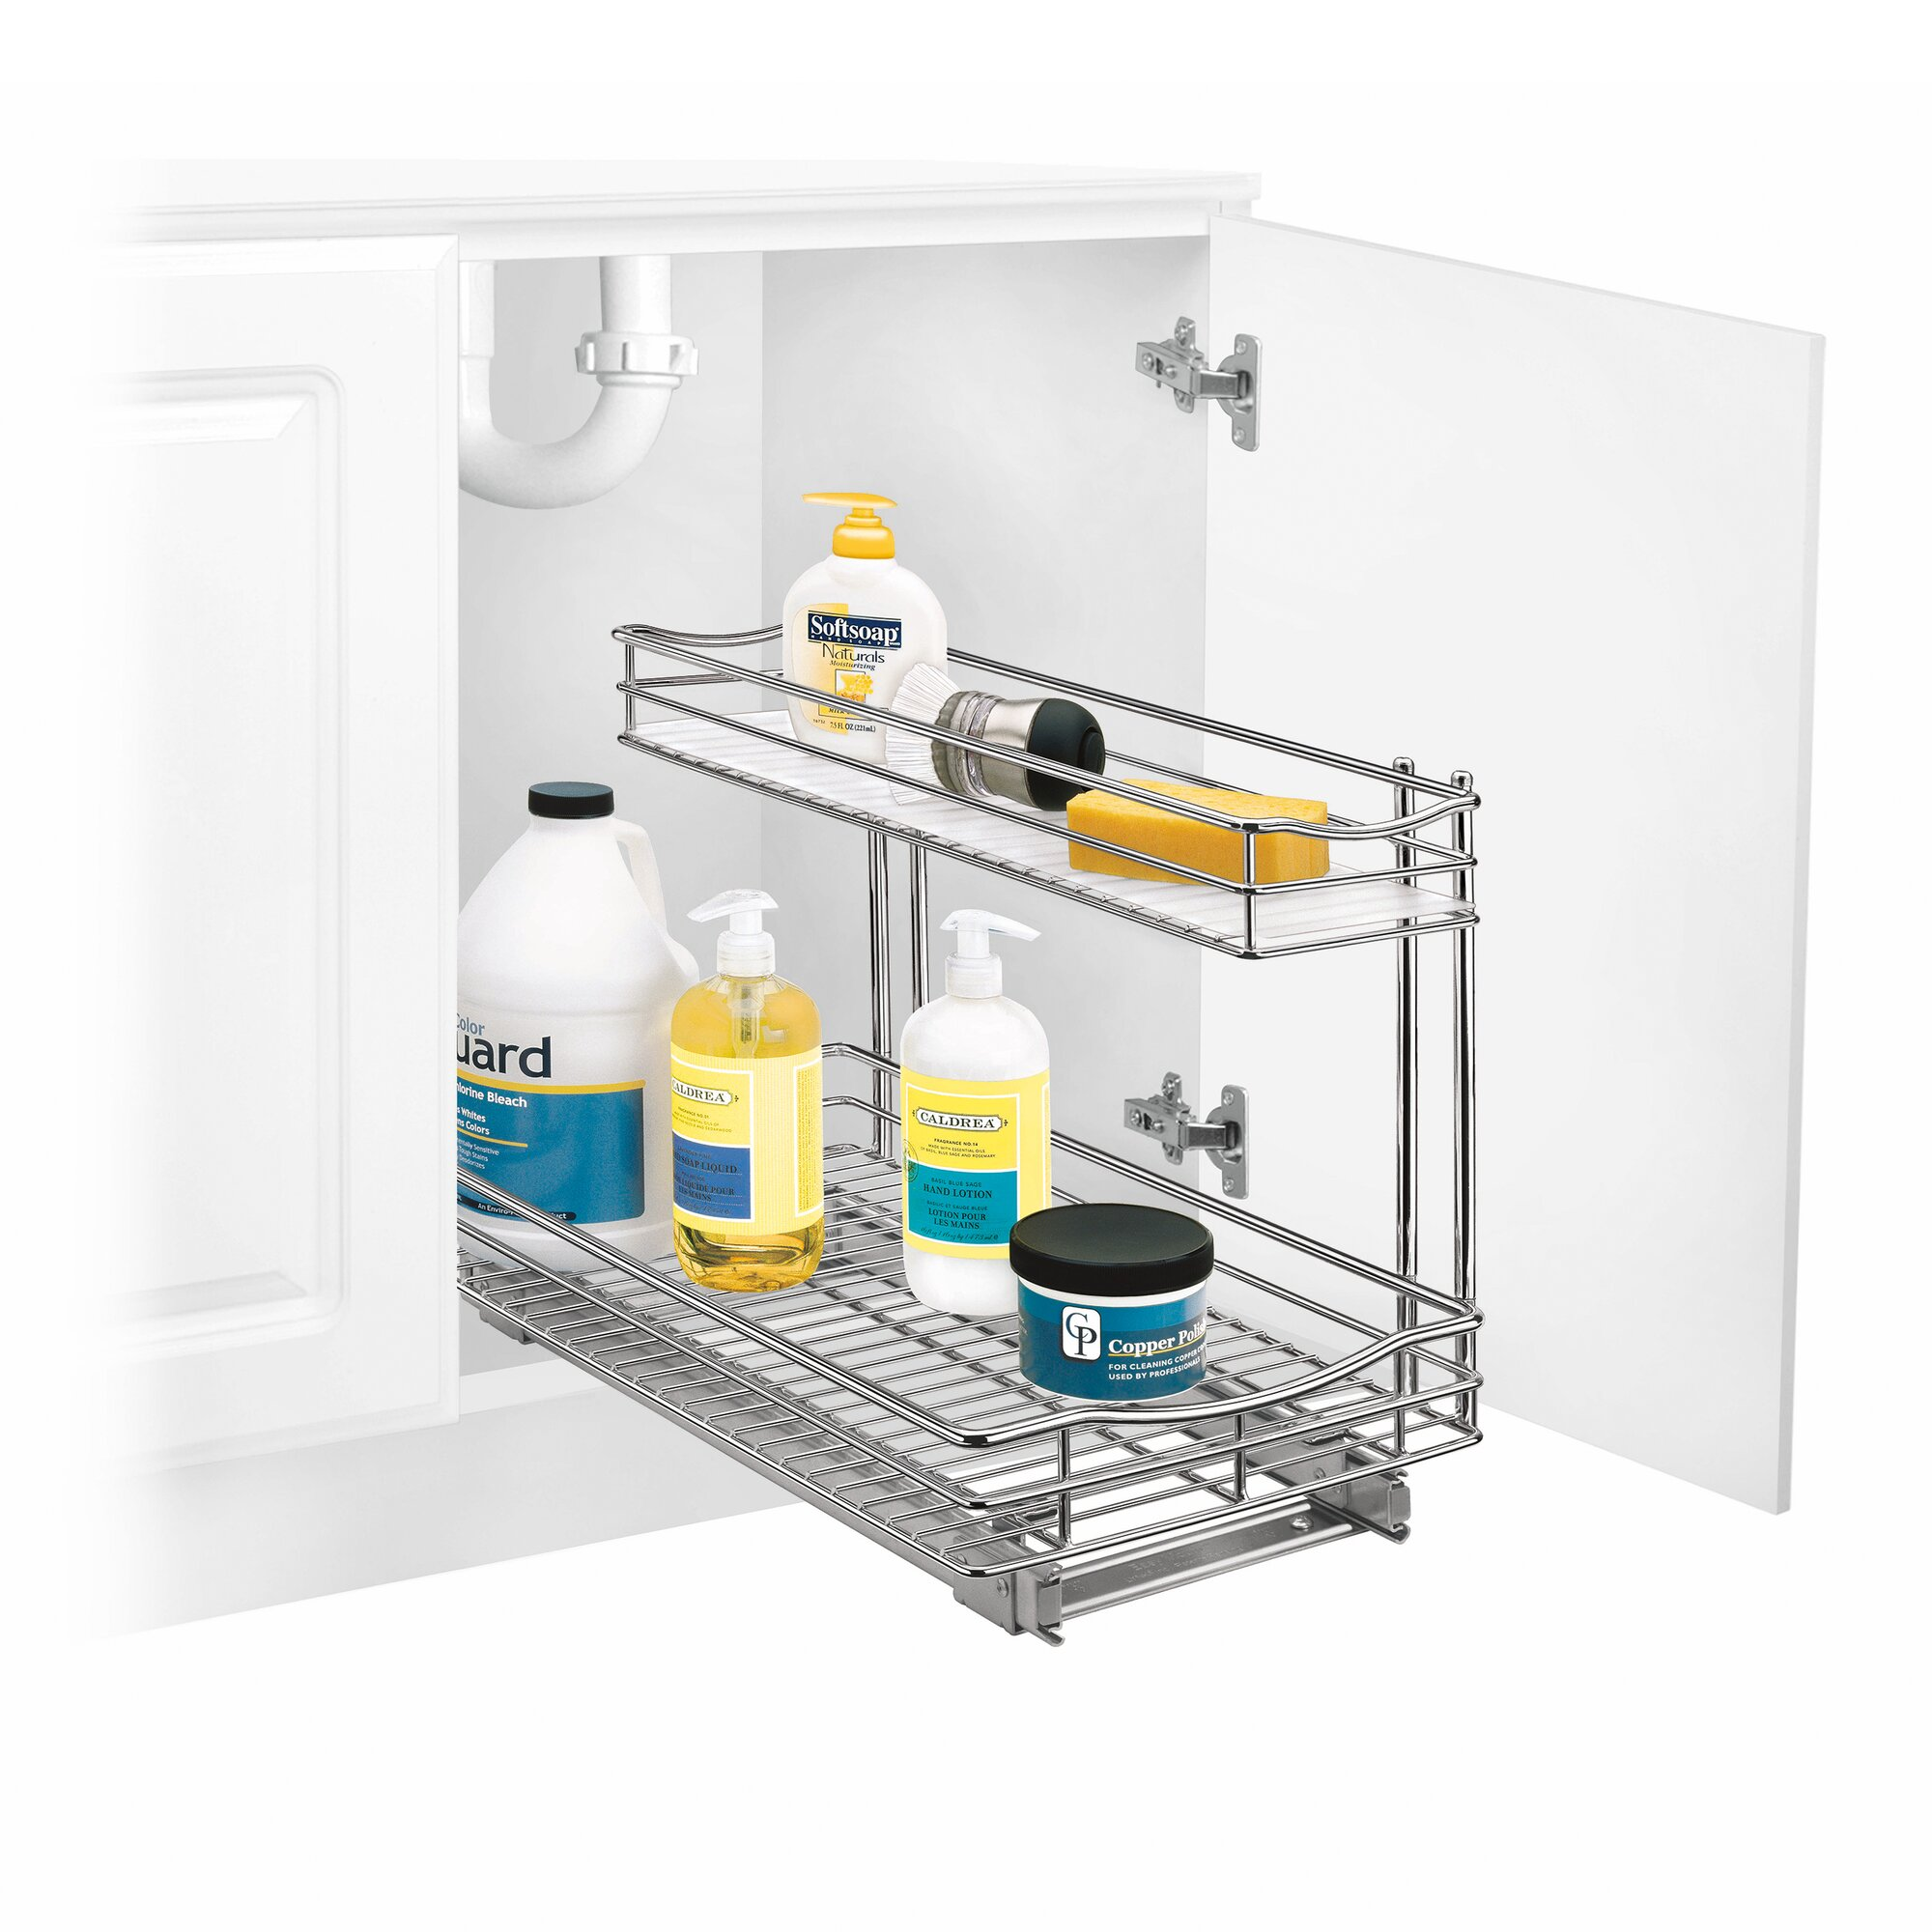 lynk roll out under sink cabinet organizer pull out two tier sliding shelf 11 5 in wide x. Black Bedroom Furniture Sets. Home Design Ideas